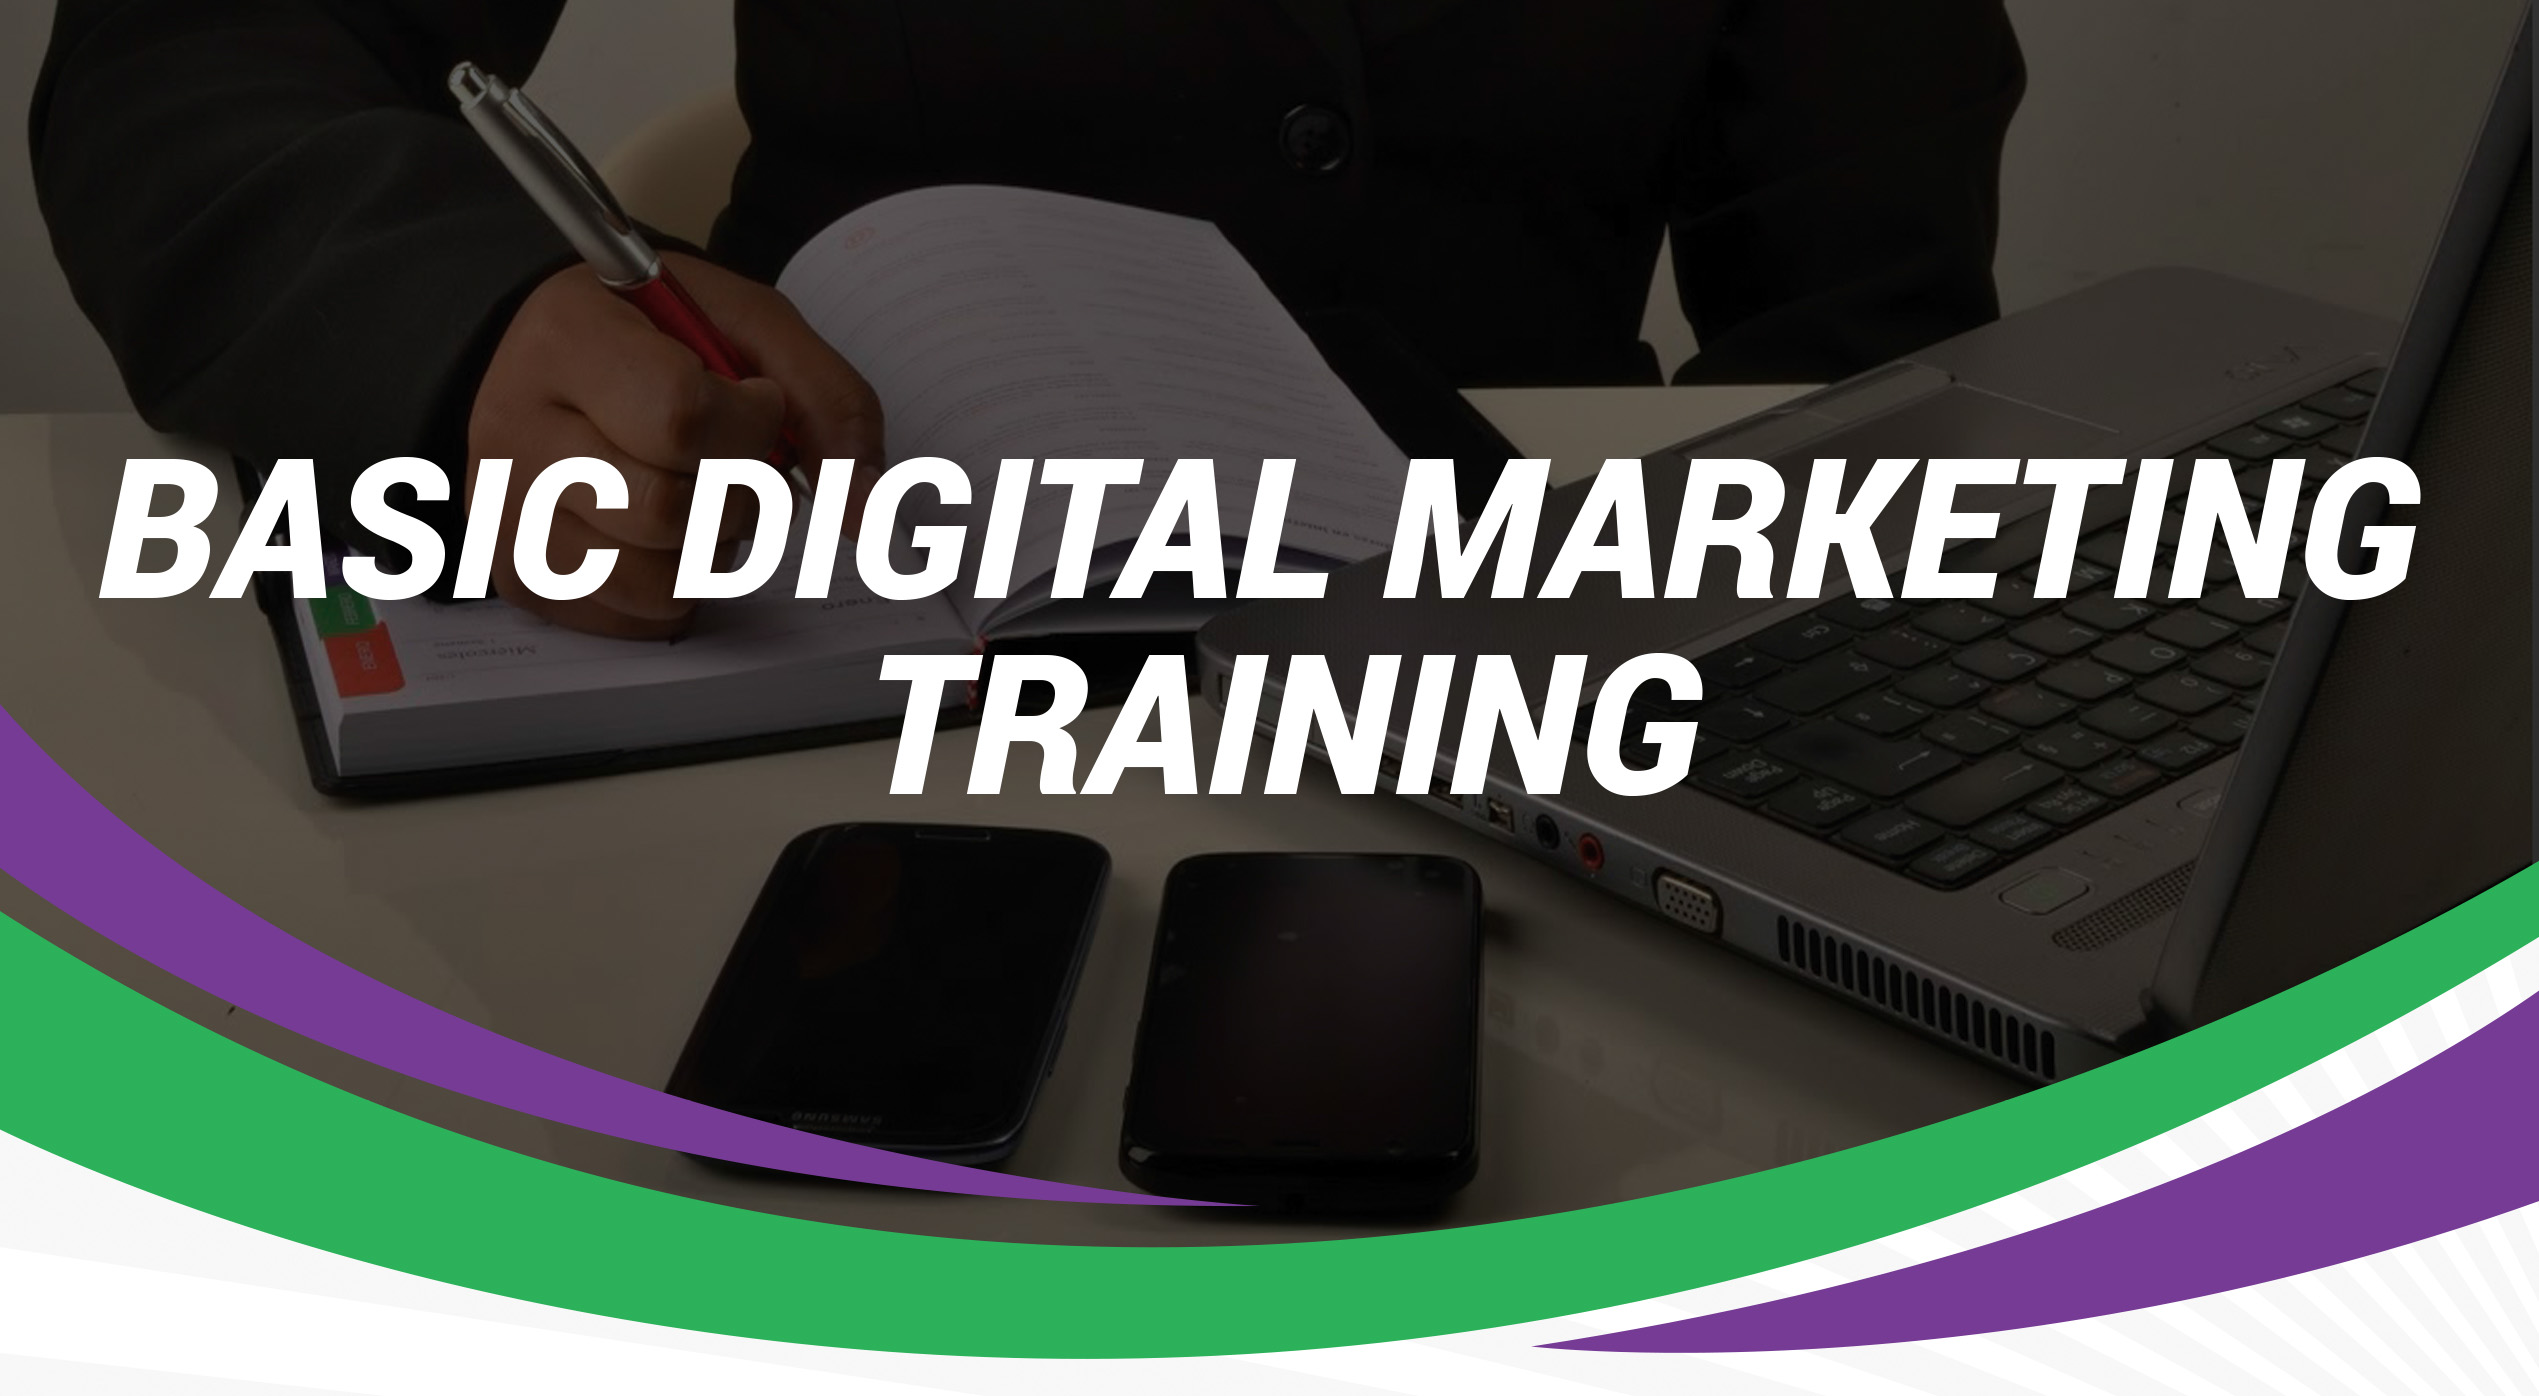 Basic Digital Marketing Course